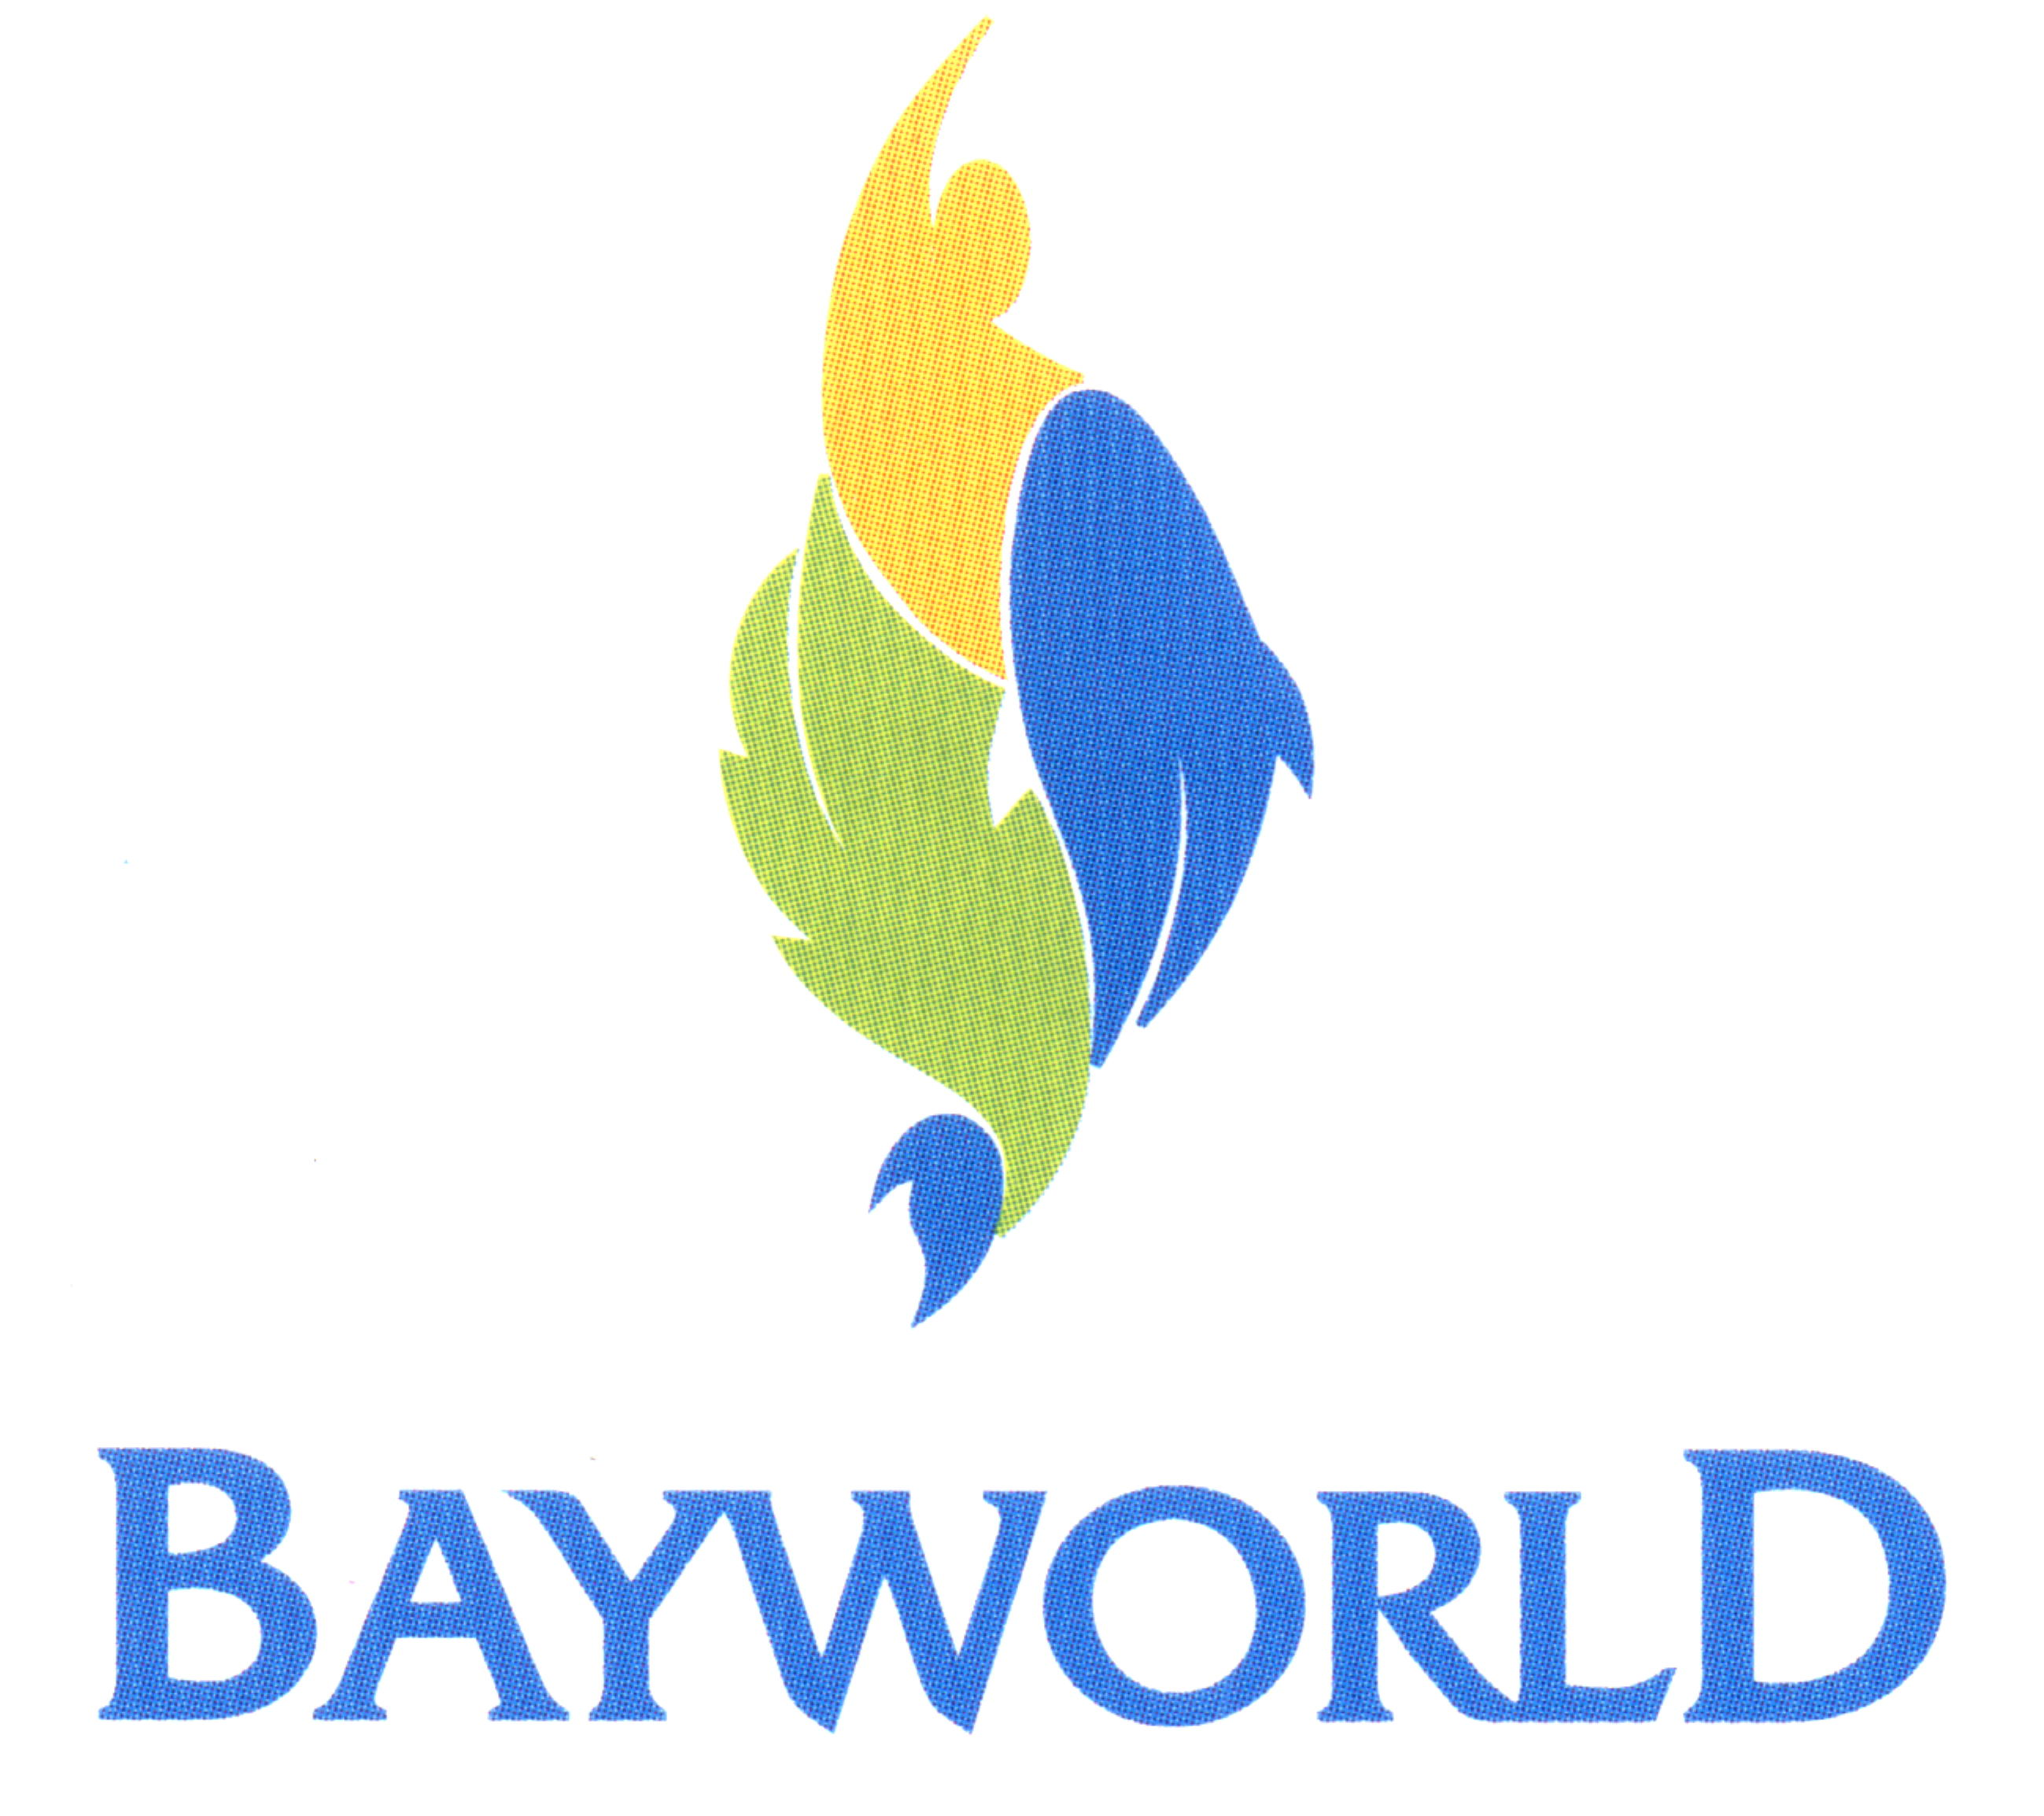 Bayworld logo